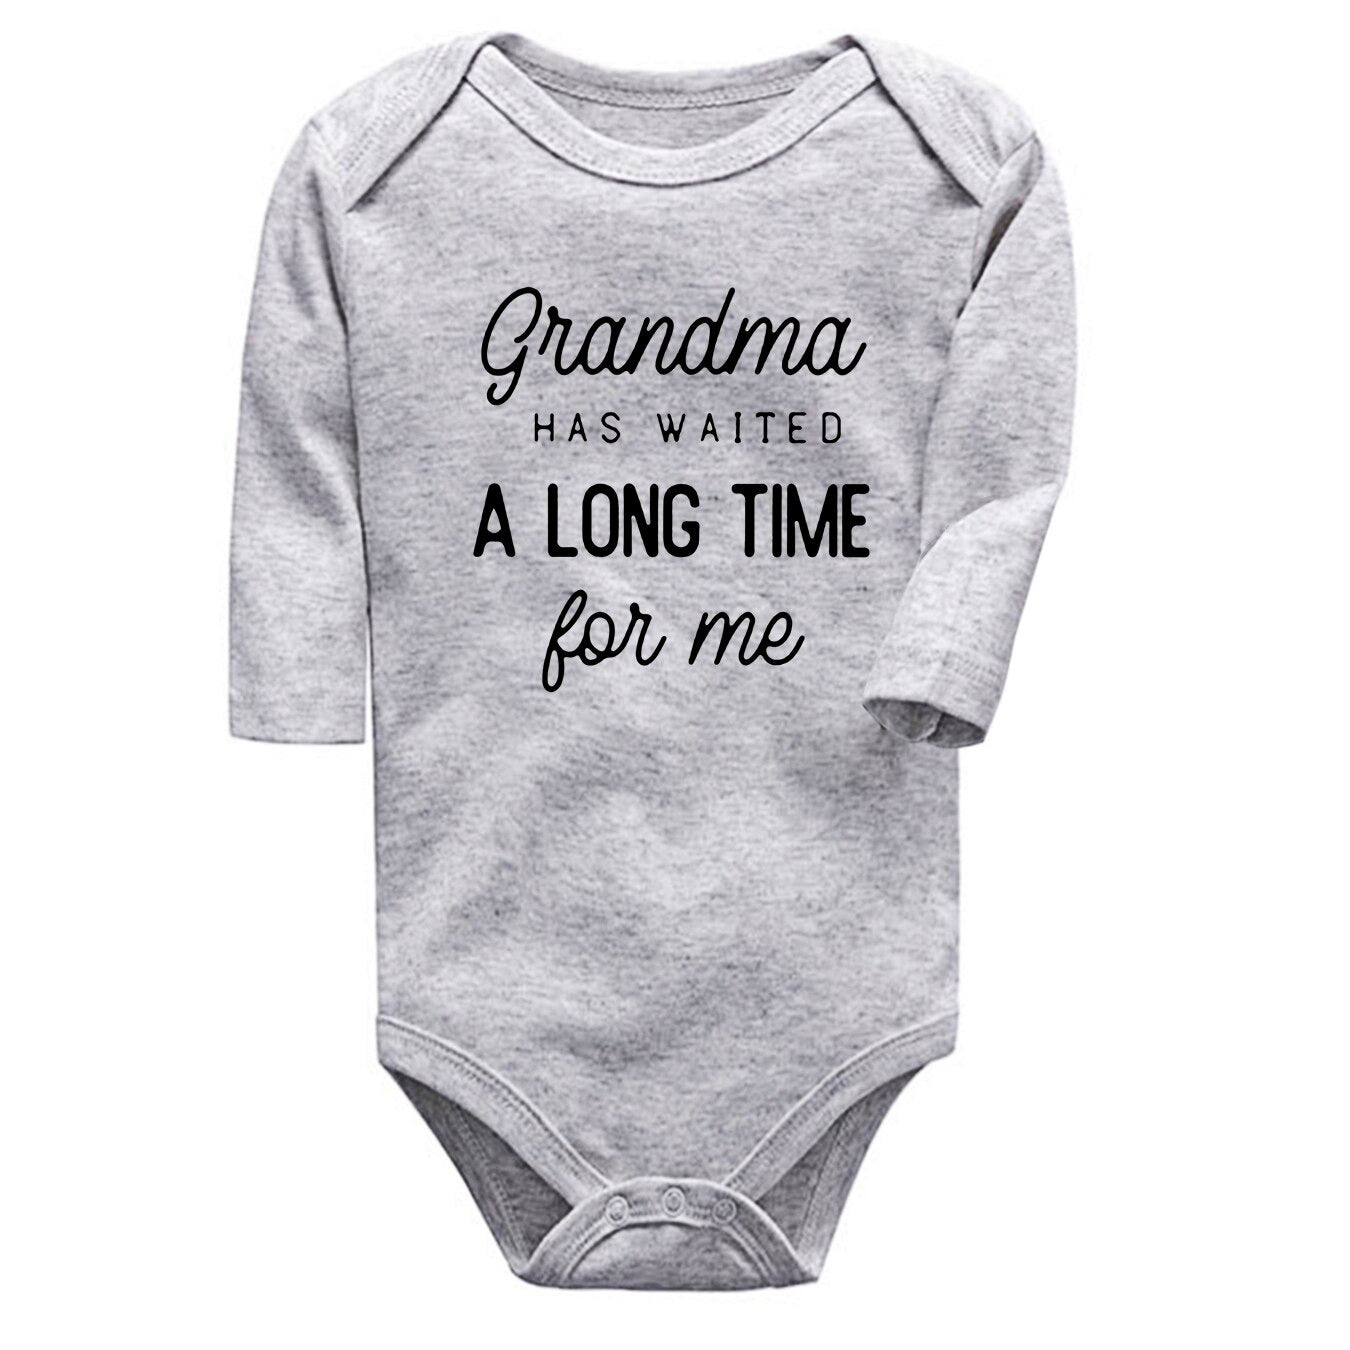 ong-time-letter-printing-new-born-baby-c_description-10